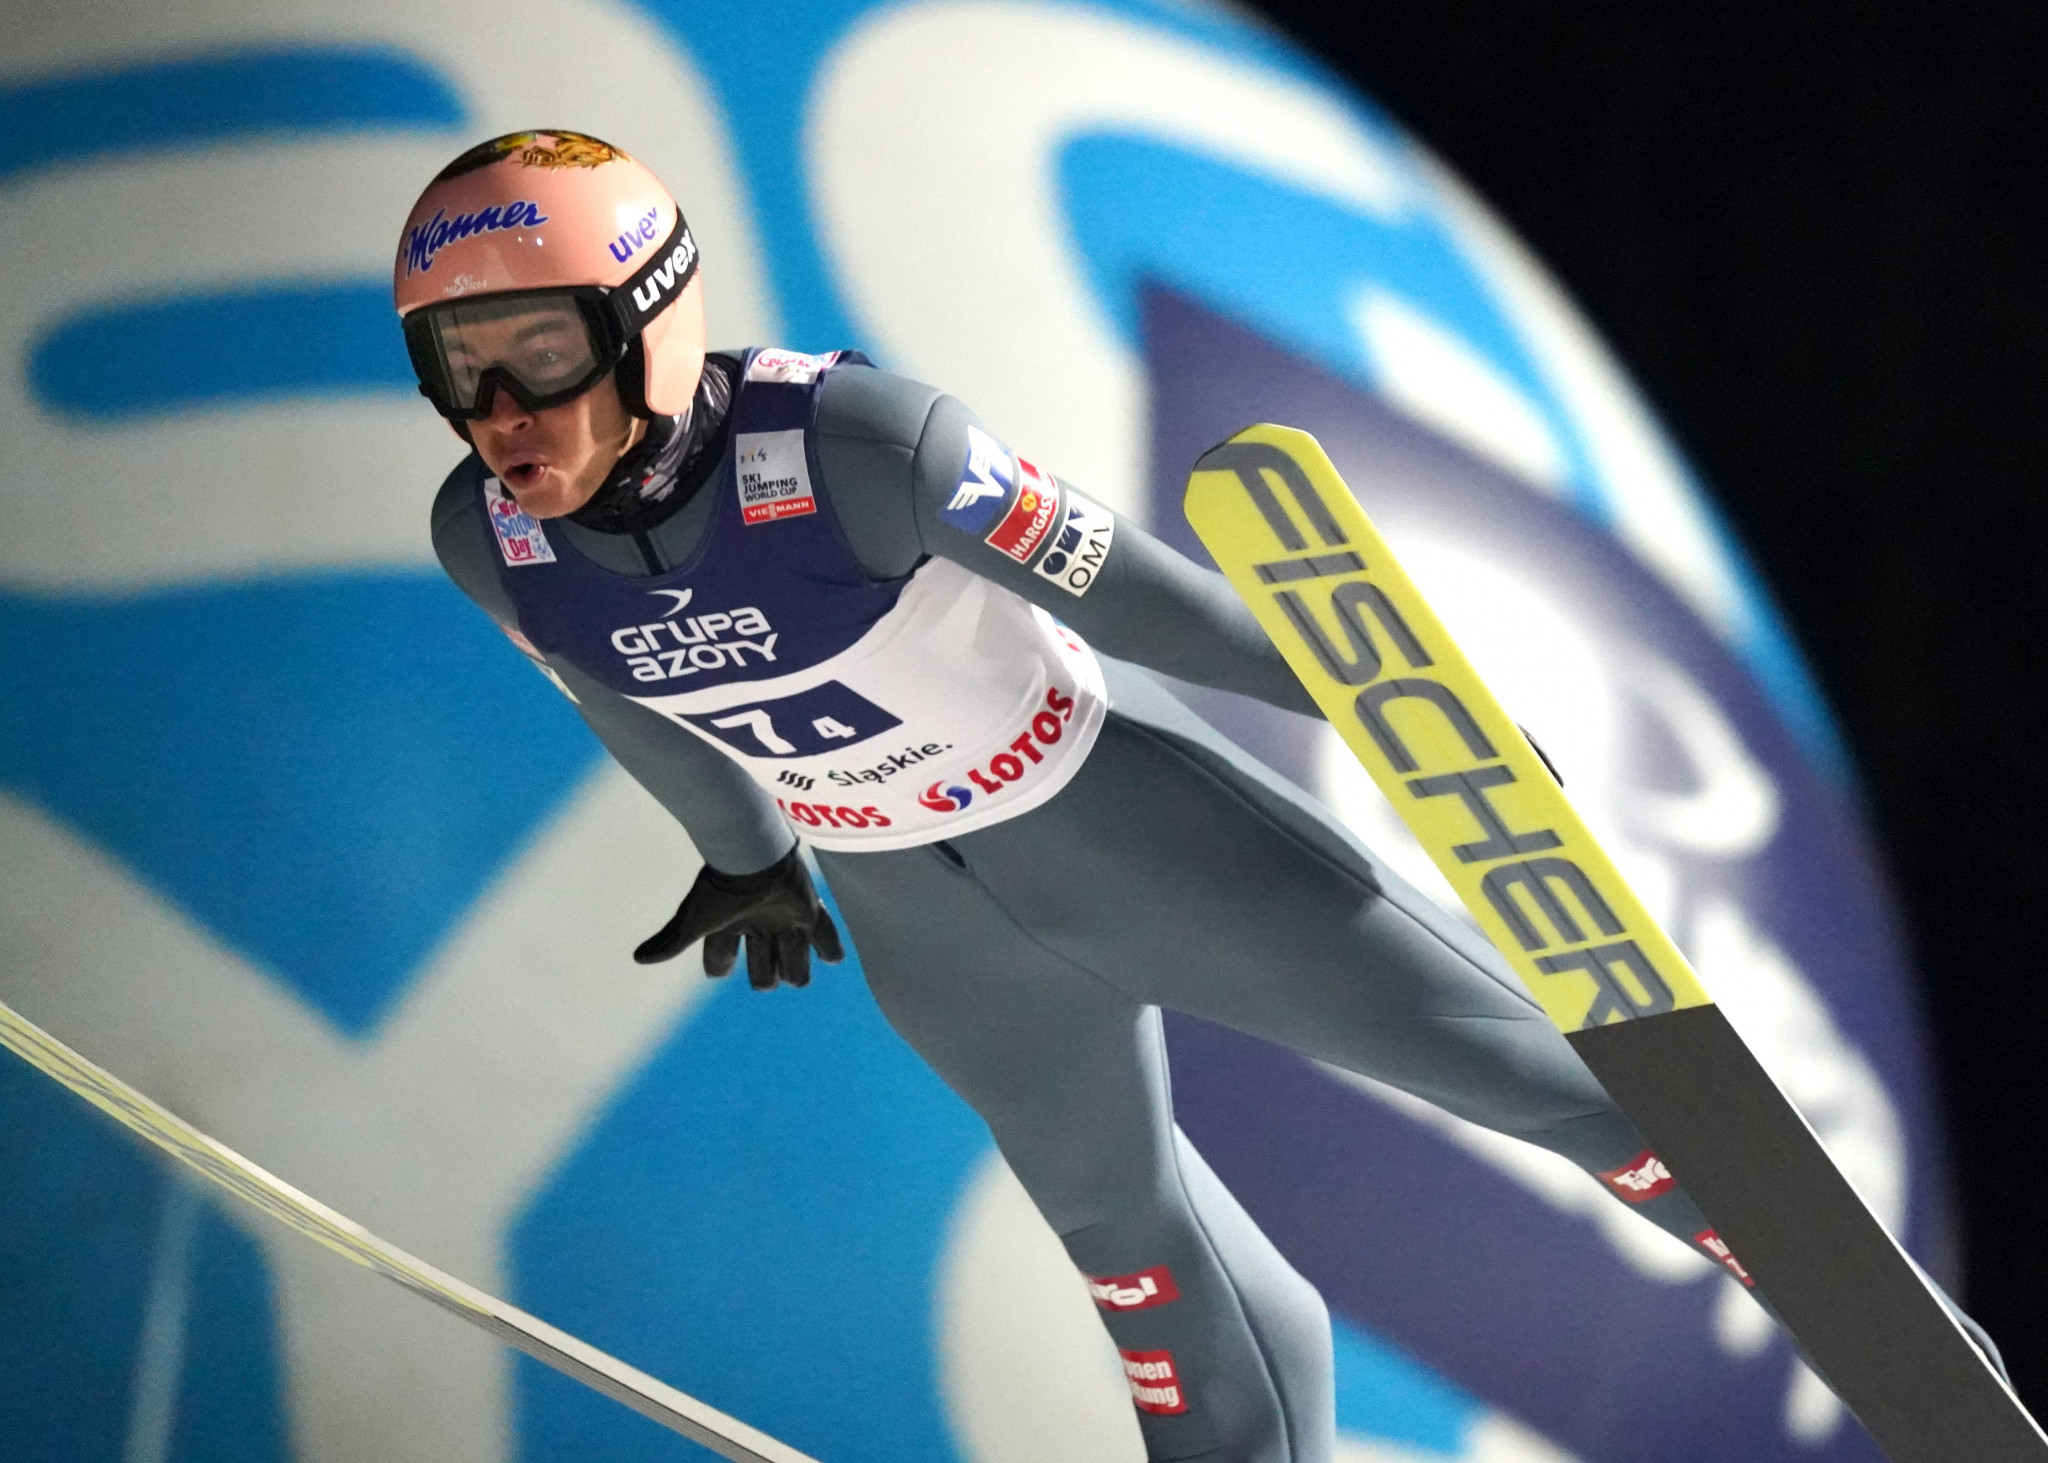 Kraft claims victory at FIS Ski Jumping World Cup in Nizhny Tagil